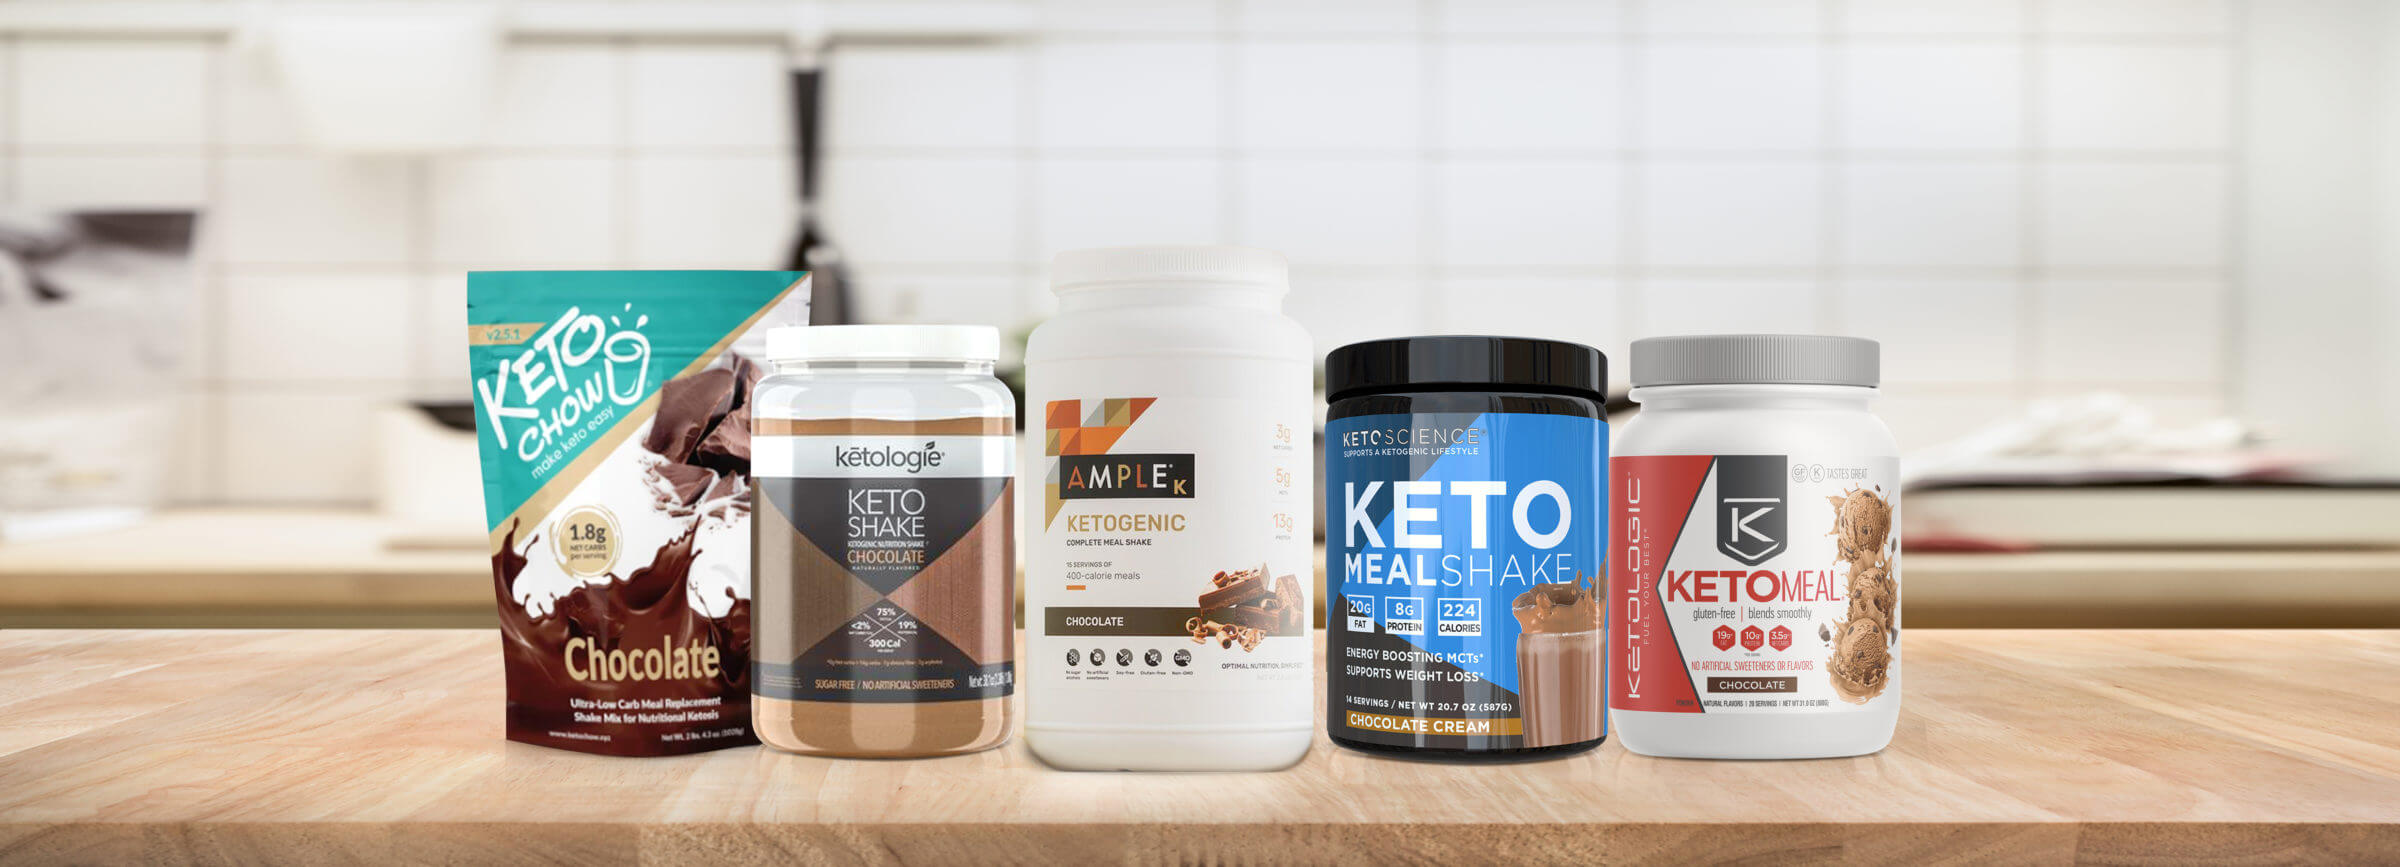 Top 5 Keto Meal Replacements